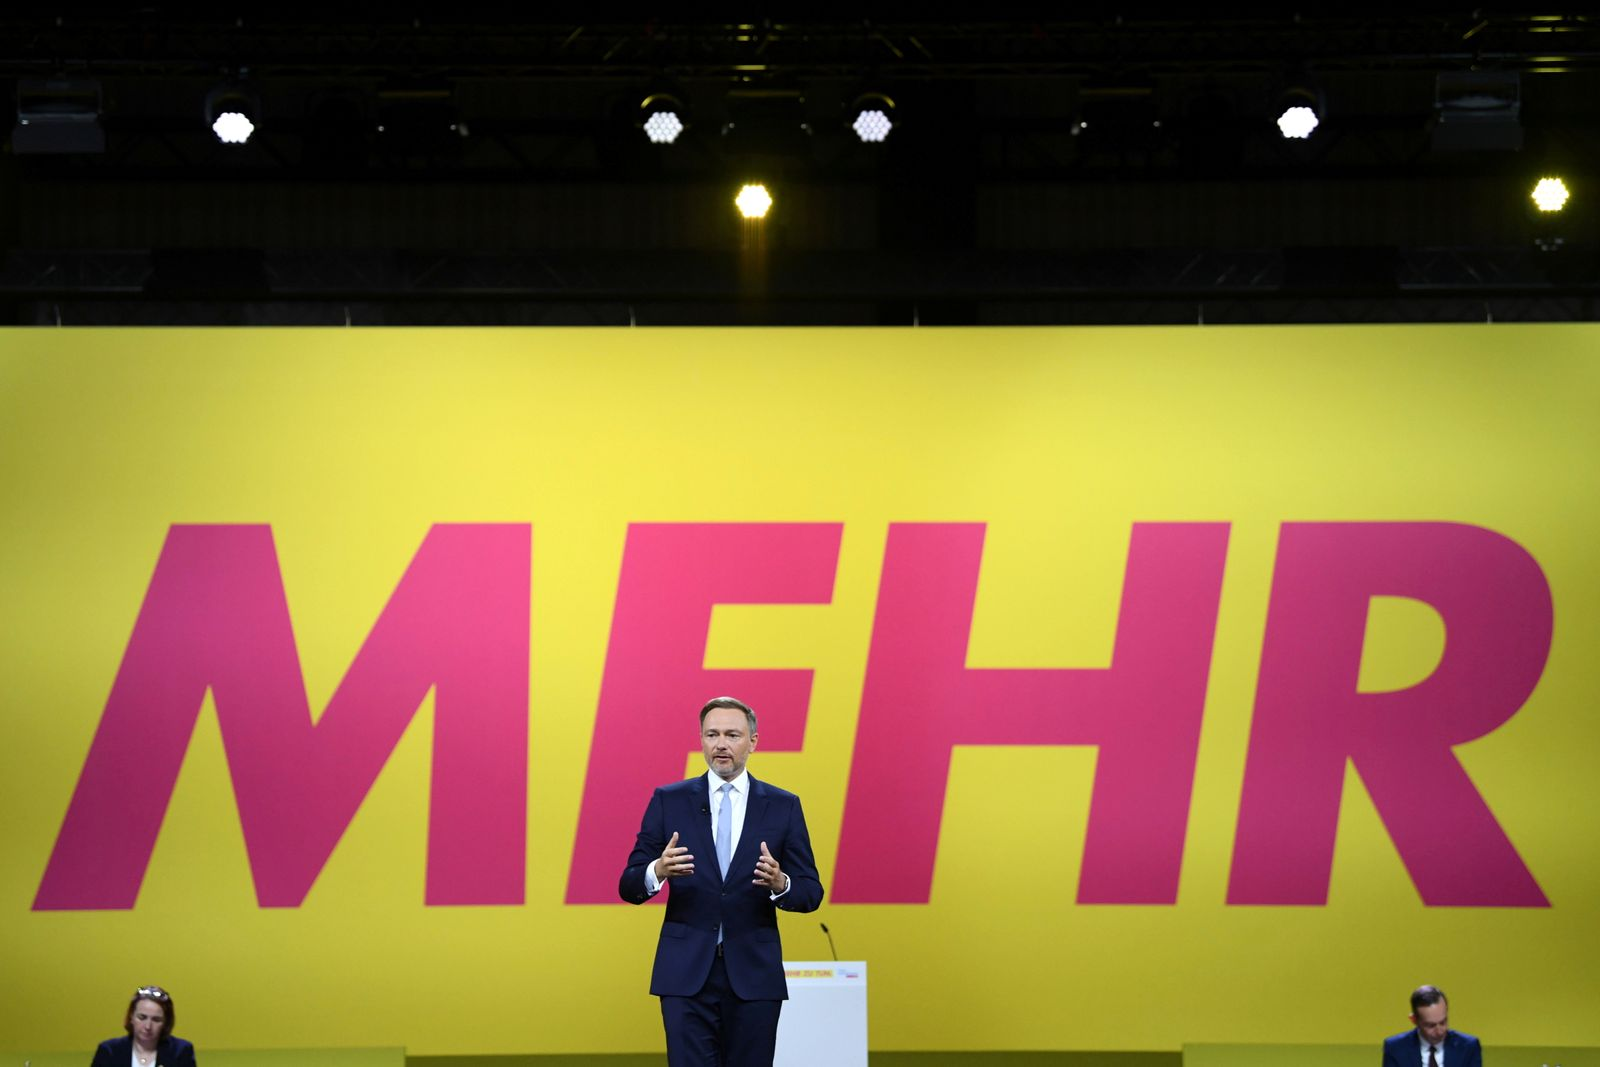 FDP holds party congress one week before general election in Germany